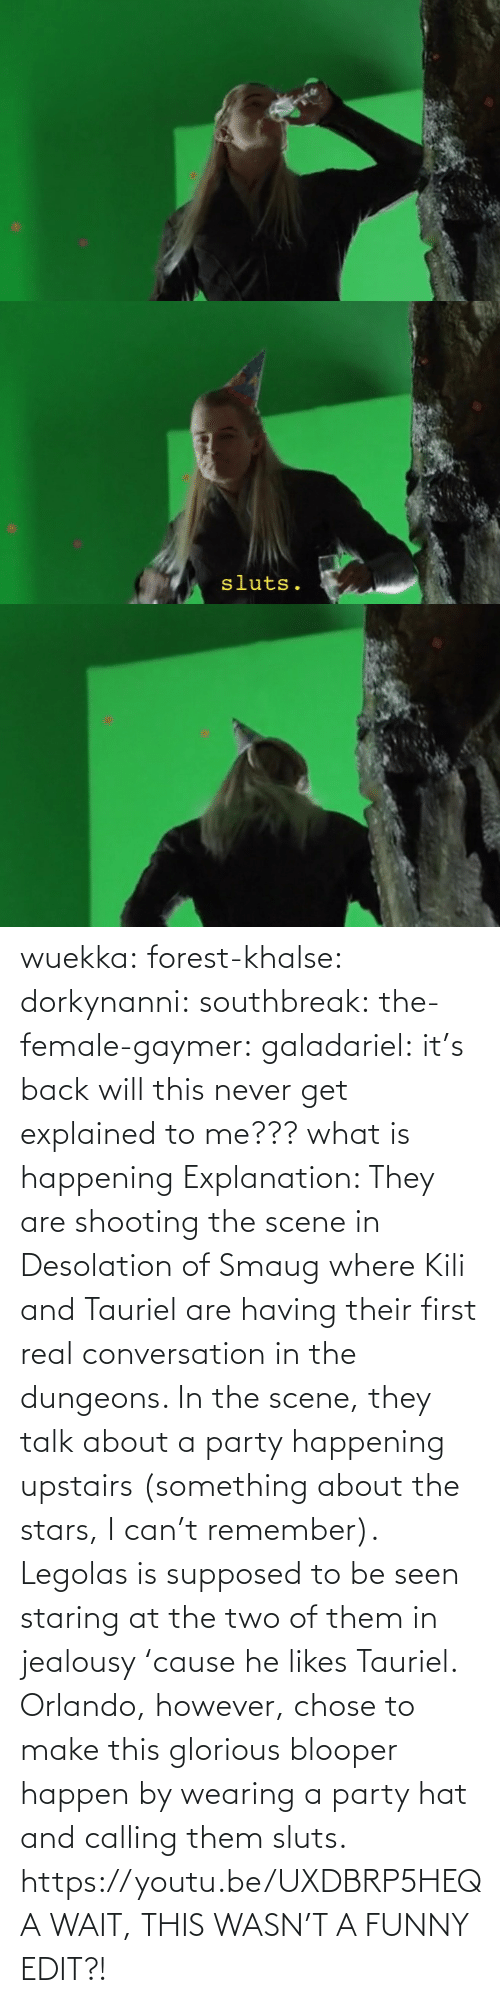 happening: wuekka:  forest-khalse:   dorkynanni:  southbreak:   the-female-gaymer:   galadariel:  it's back   will this never get explained to me???    what is happening    Explanation:  They are shooting the scene in Desolation of Smaug where Kili and Tauriel are having their first real conversation in the dungeons.  In the scene, they talk about a party happening upstairs (something about the stars, I can't remember). Legolas is supposed to be seen staring at the two of them in jealousy 'cause he likes Tauriel.  Orlando, however, chose to make this glorious blooper happen by wearing a party hat and calling them sluts.    https://youtu.be/UXDBRP5HEQA    WAIT, THIS WASN'T A FUNNY EDIT?!